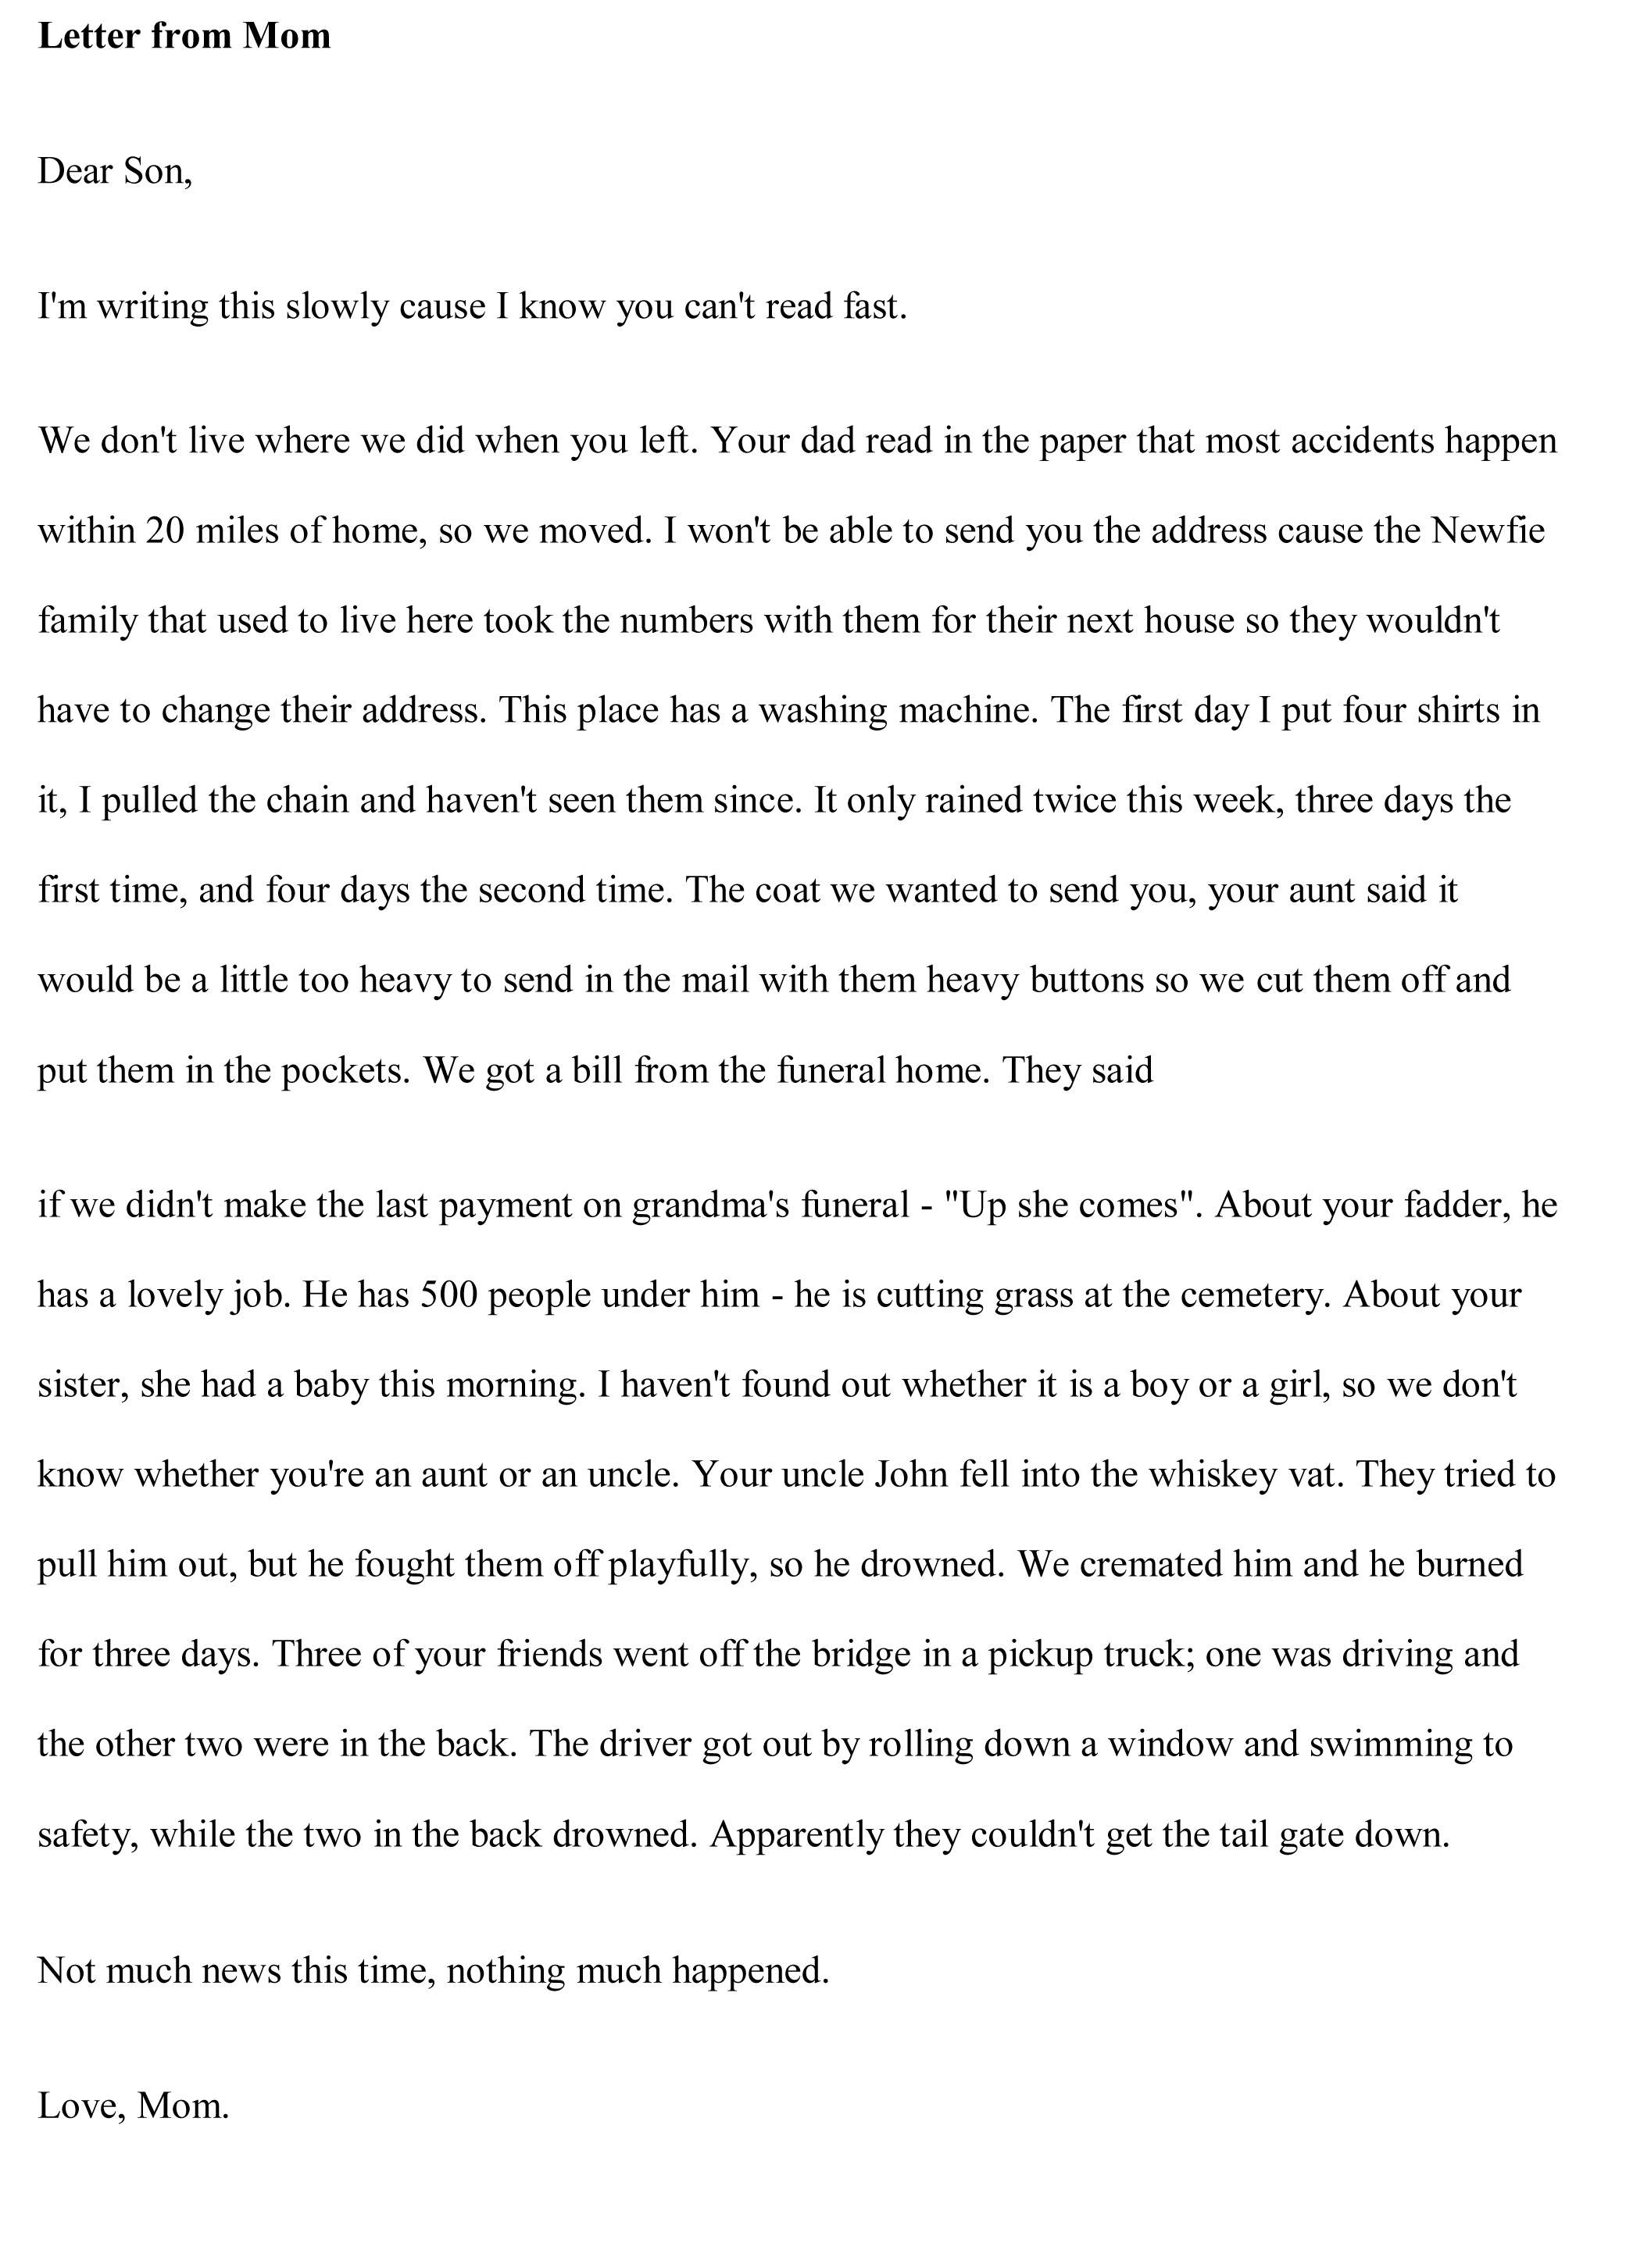 001 Humorous Essays Funny Essay Free Sample Outstanding In English For High School On Marriage Full